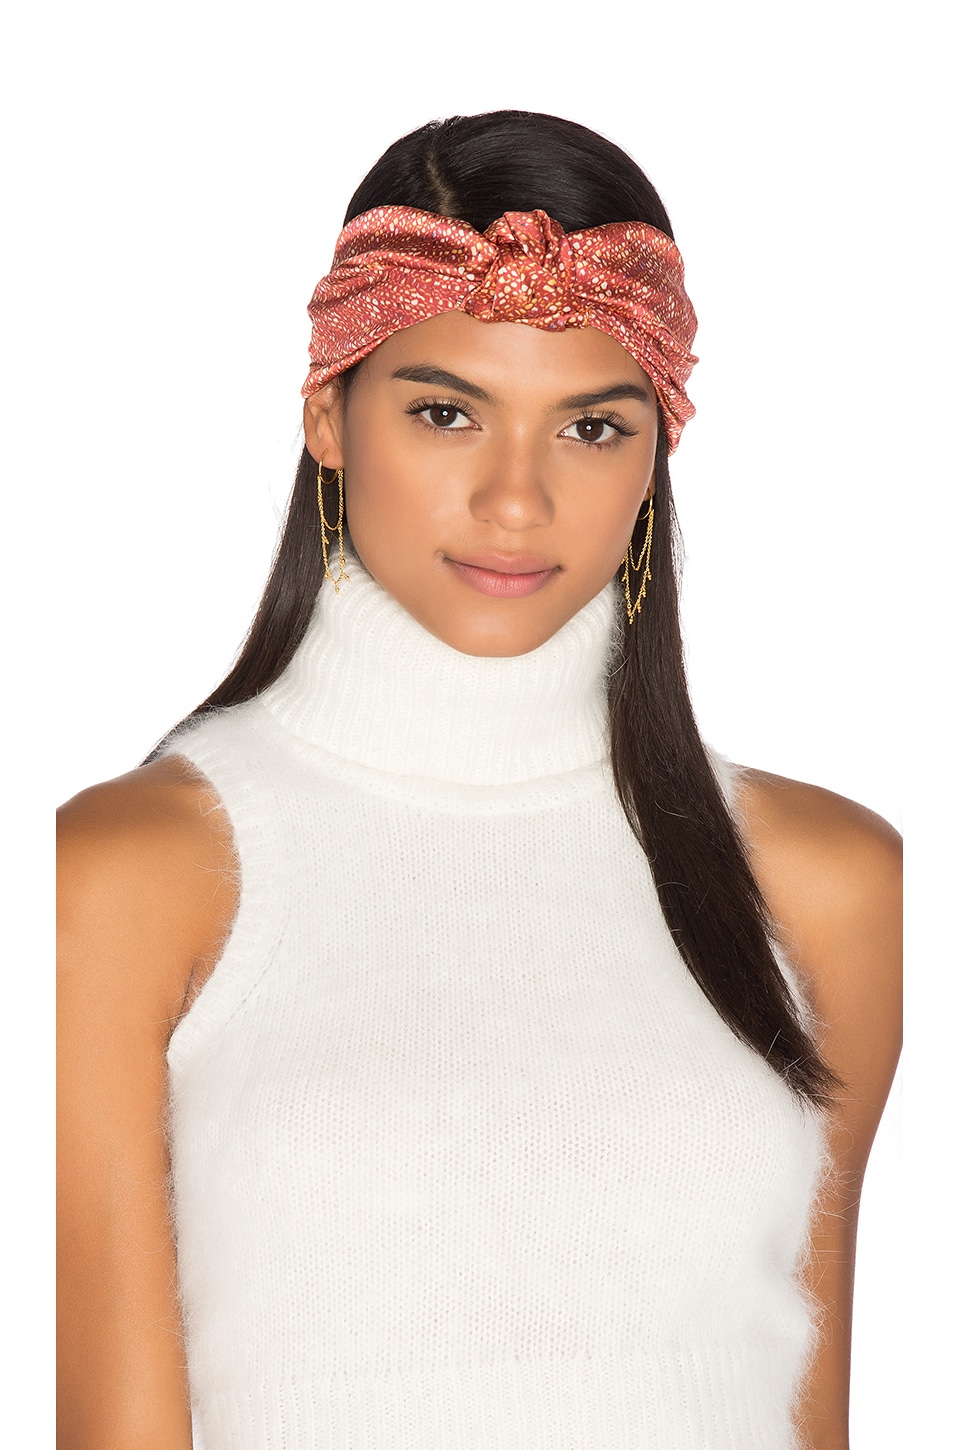 Natalia Turban at Revolve Clothing